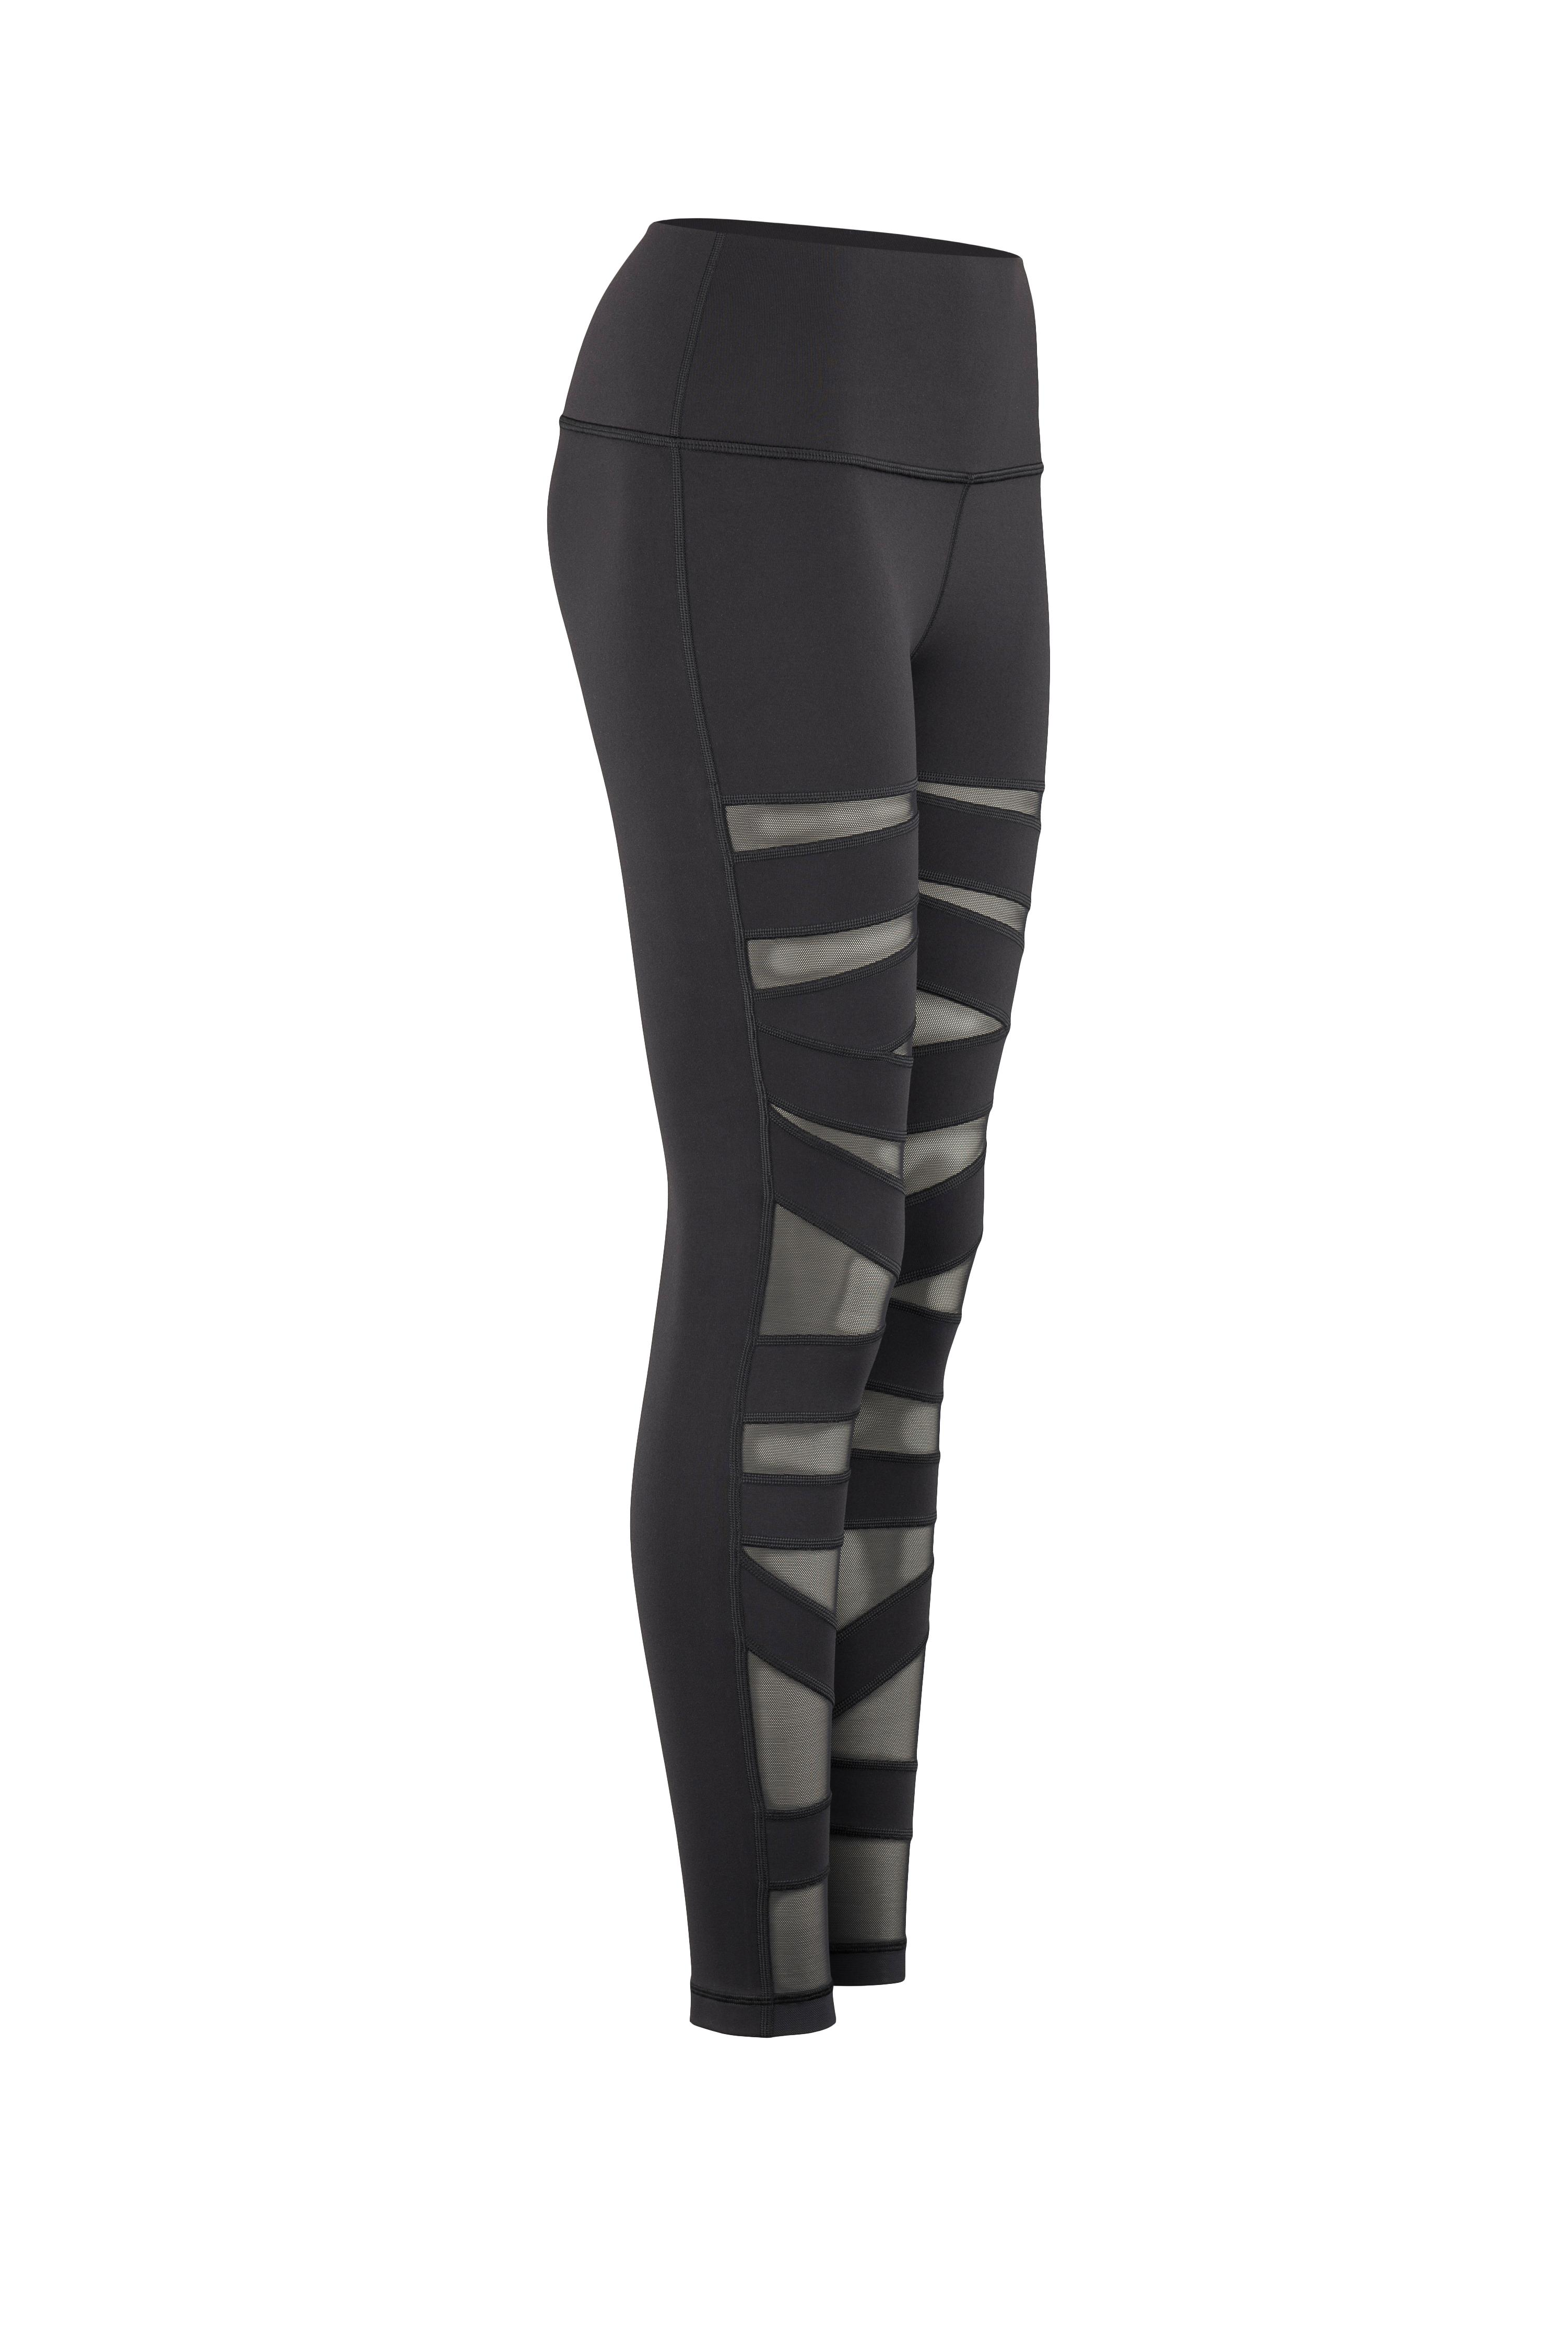 Lululemon Wunder Under HR Tight // Price: $98 // (Image: Lululemon)<p></p>